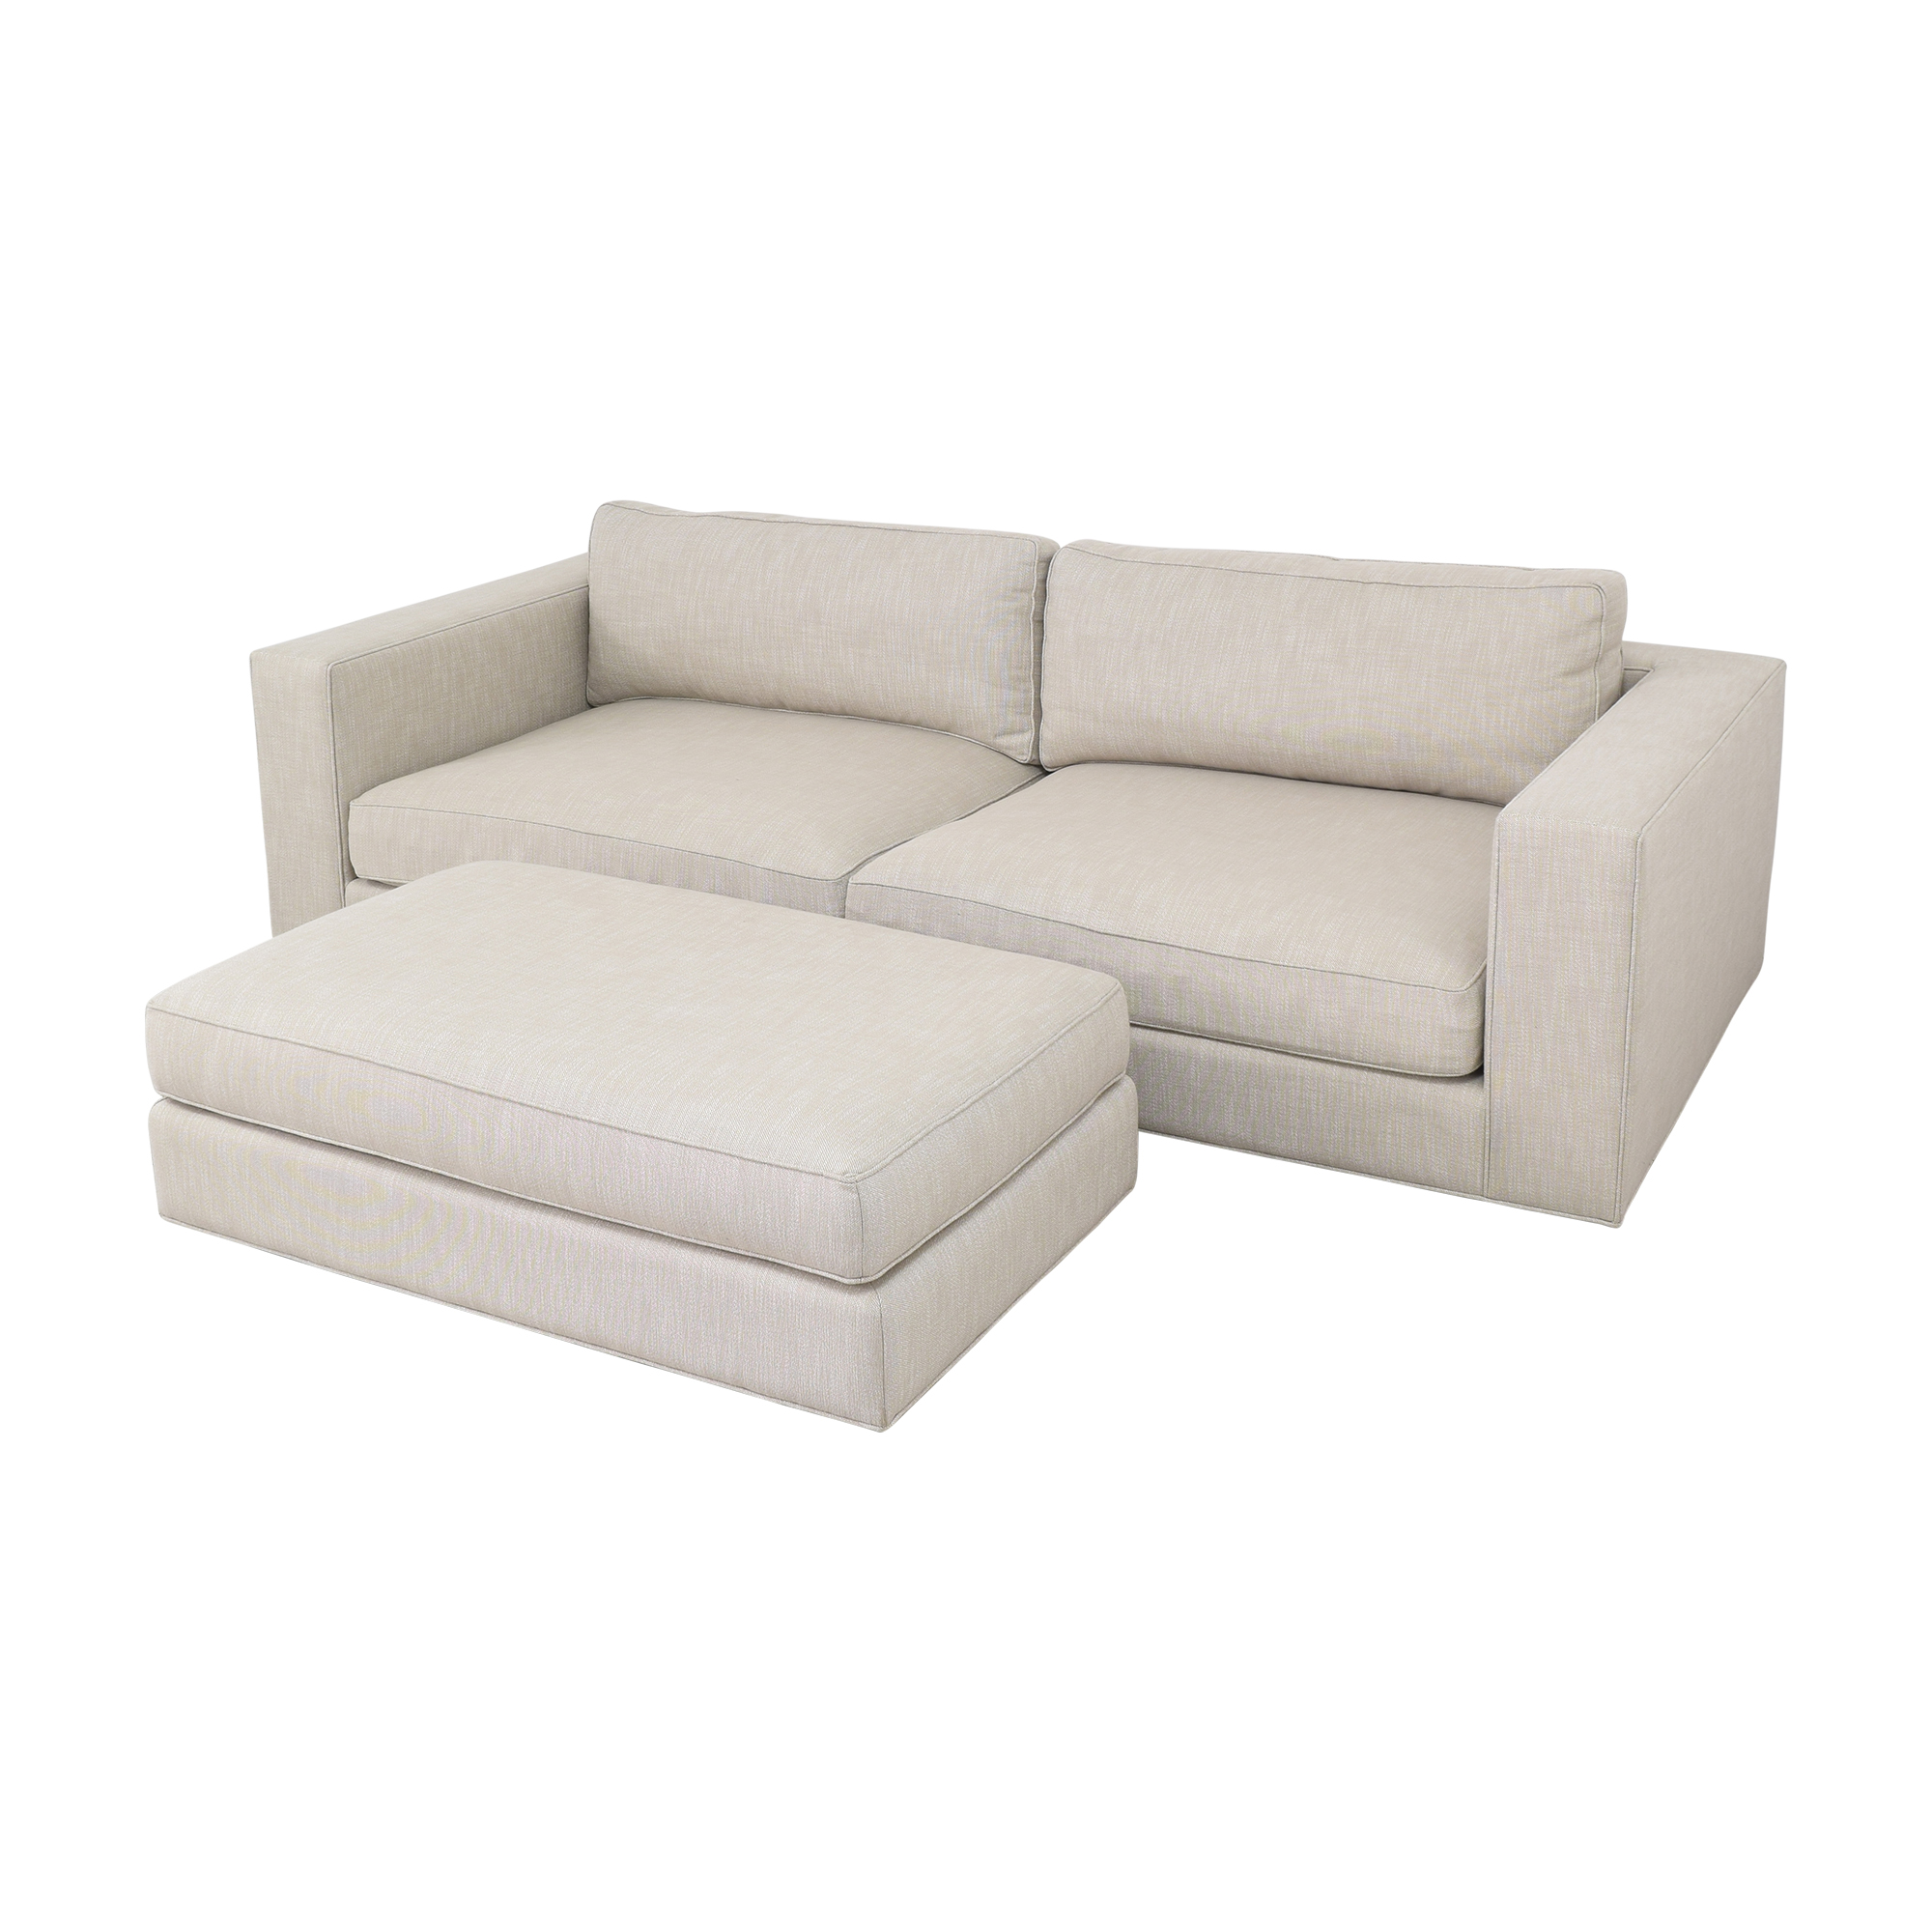 Restoration Hardware Restoration Hardware Maddox Sofa with Ottoman discount